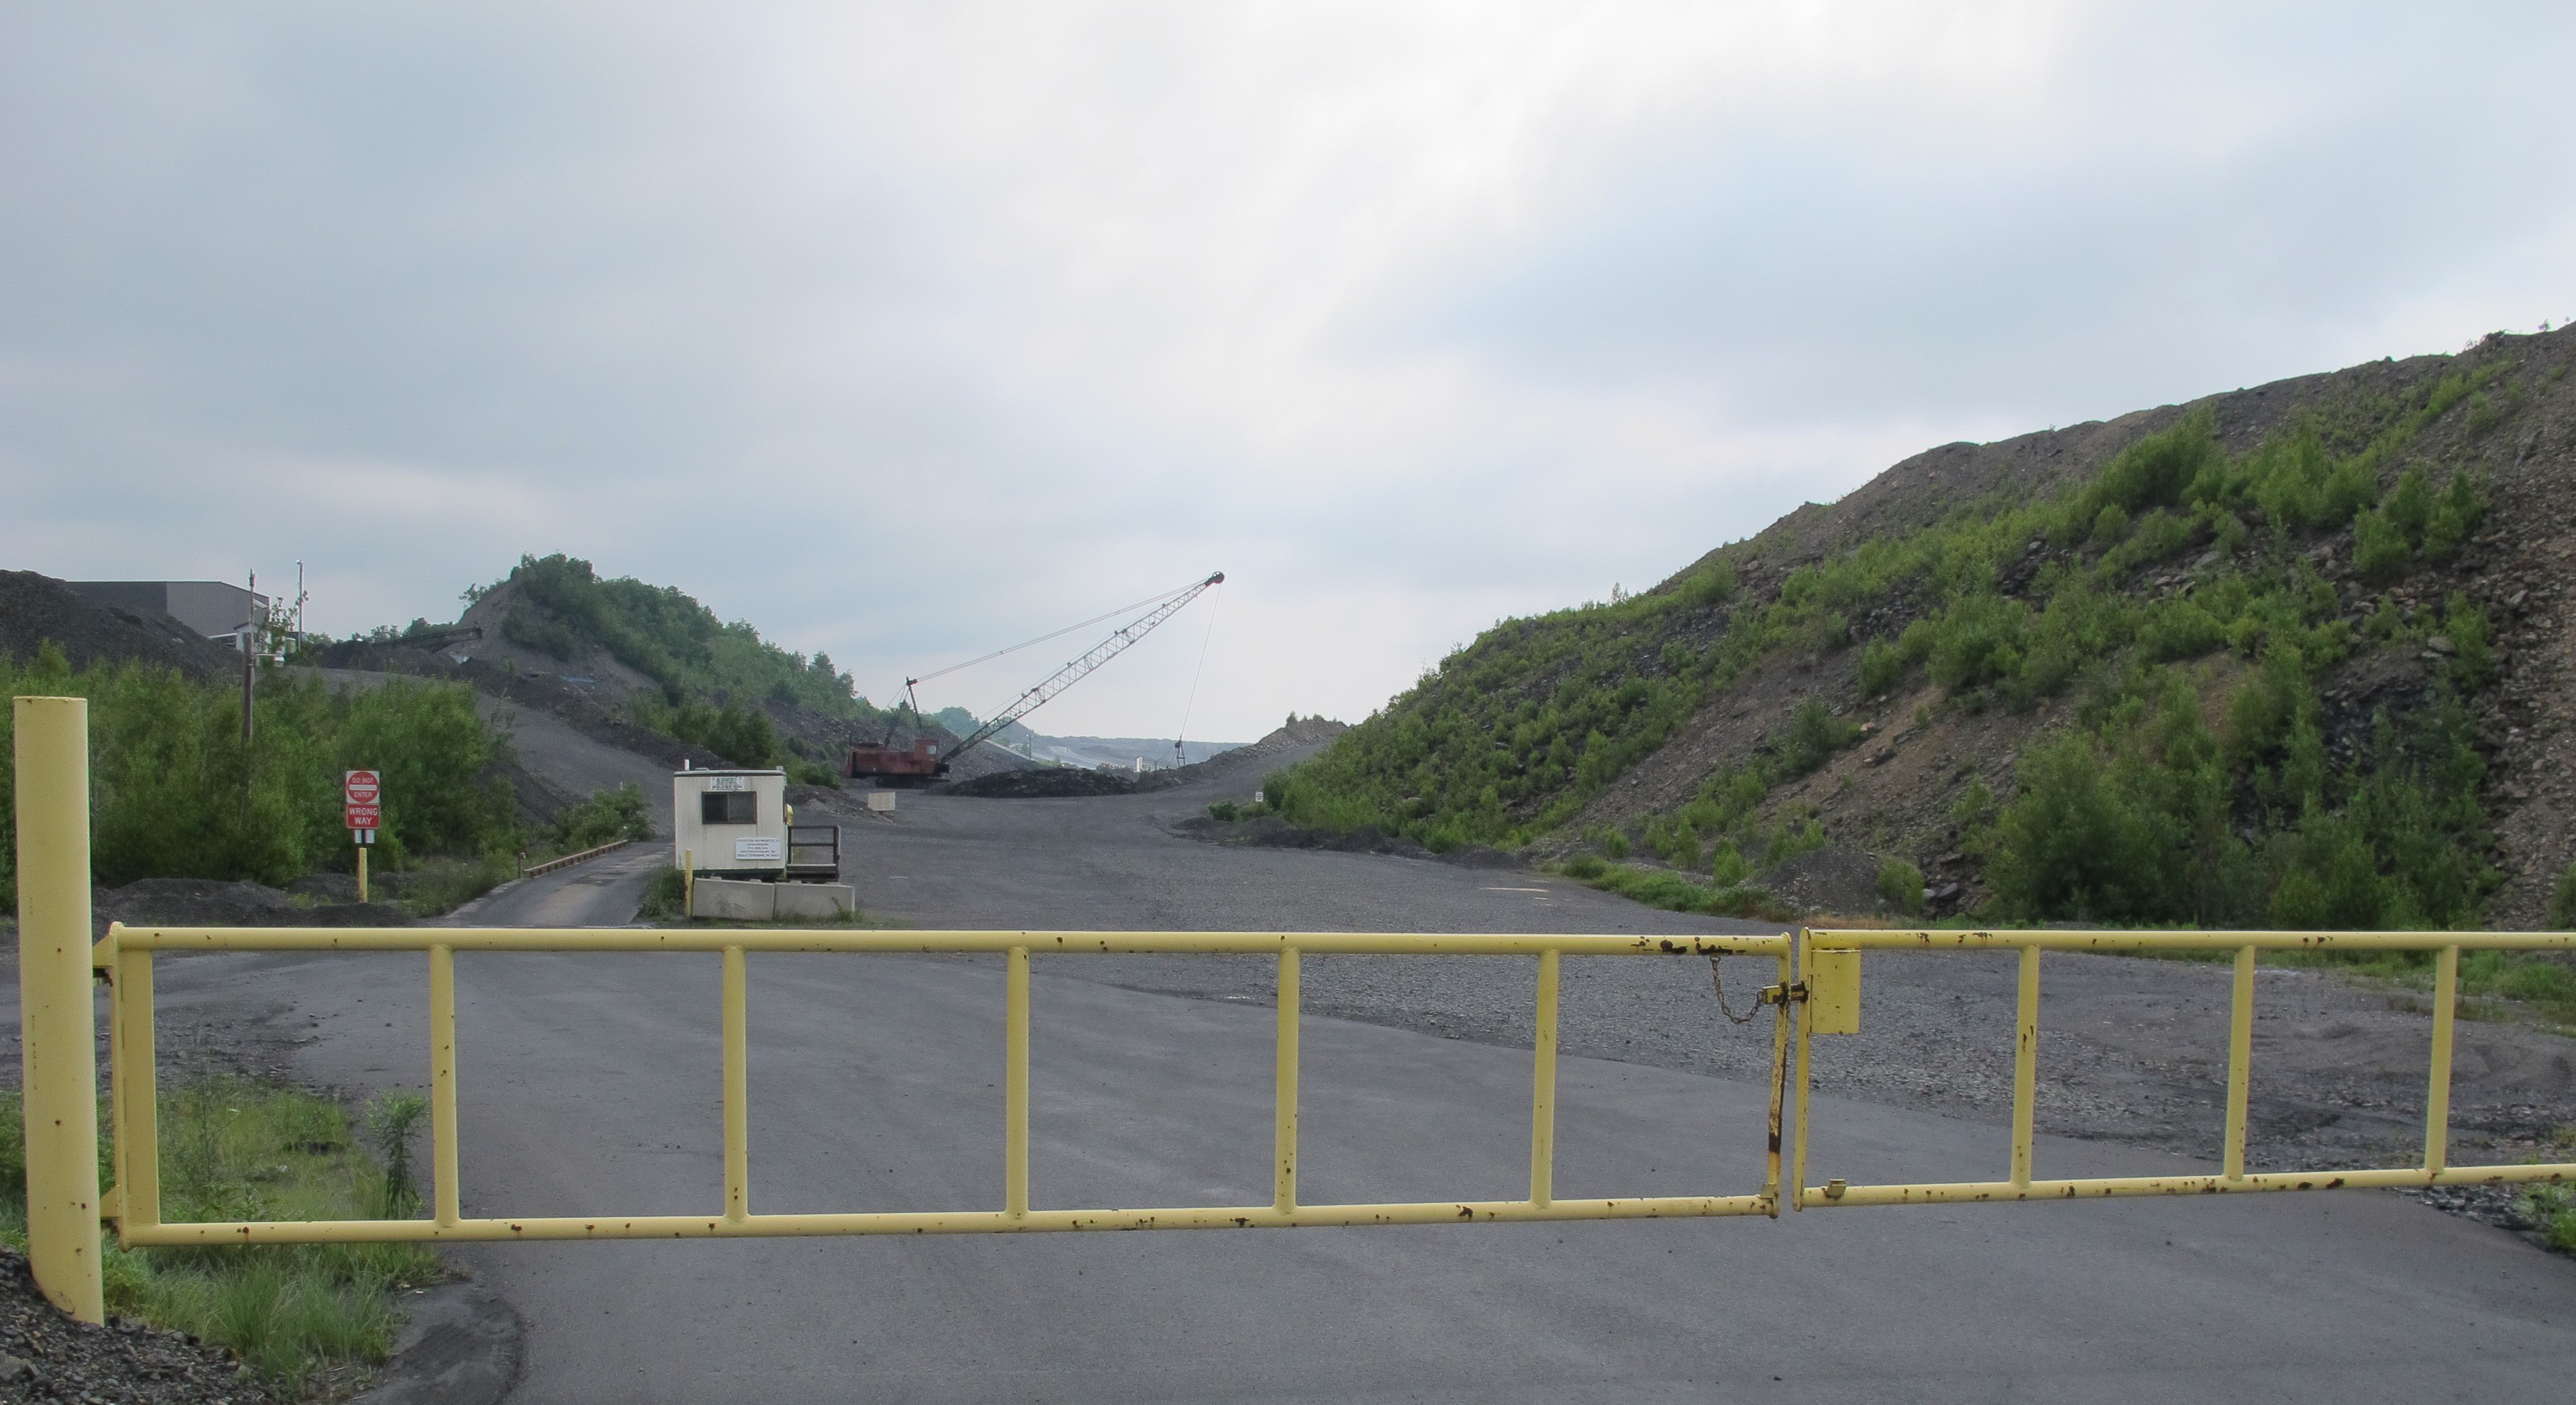 Mining near Stockton, PA, showing the culm banks on both sides of the road. Image by Paul Shackel, 2012.